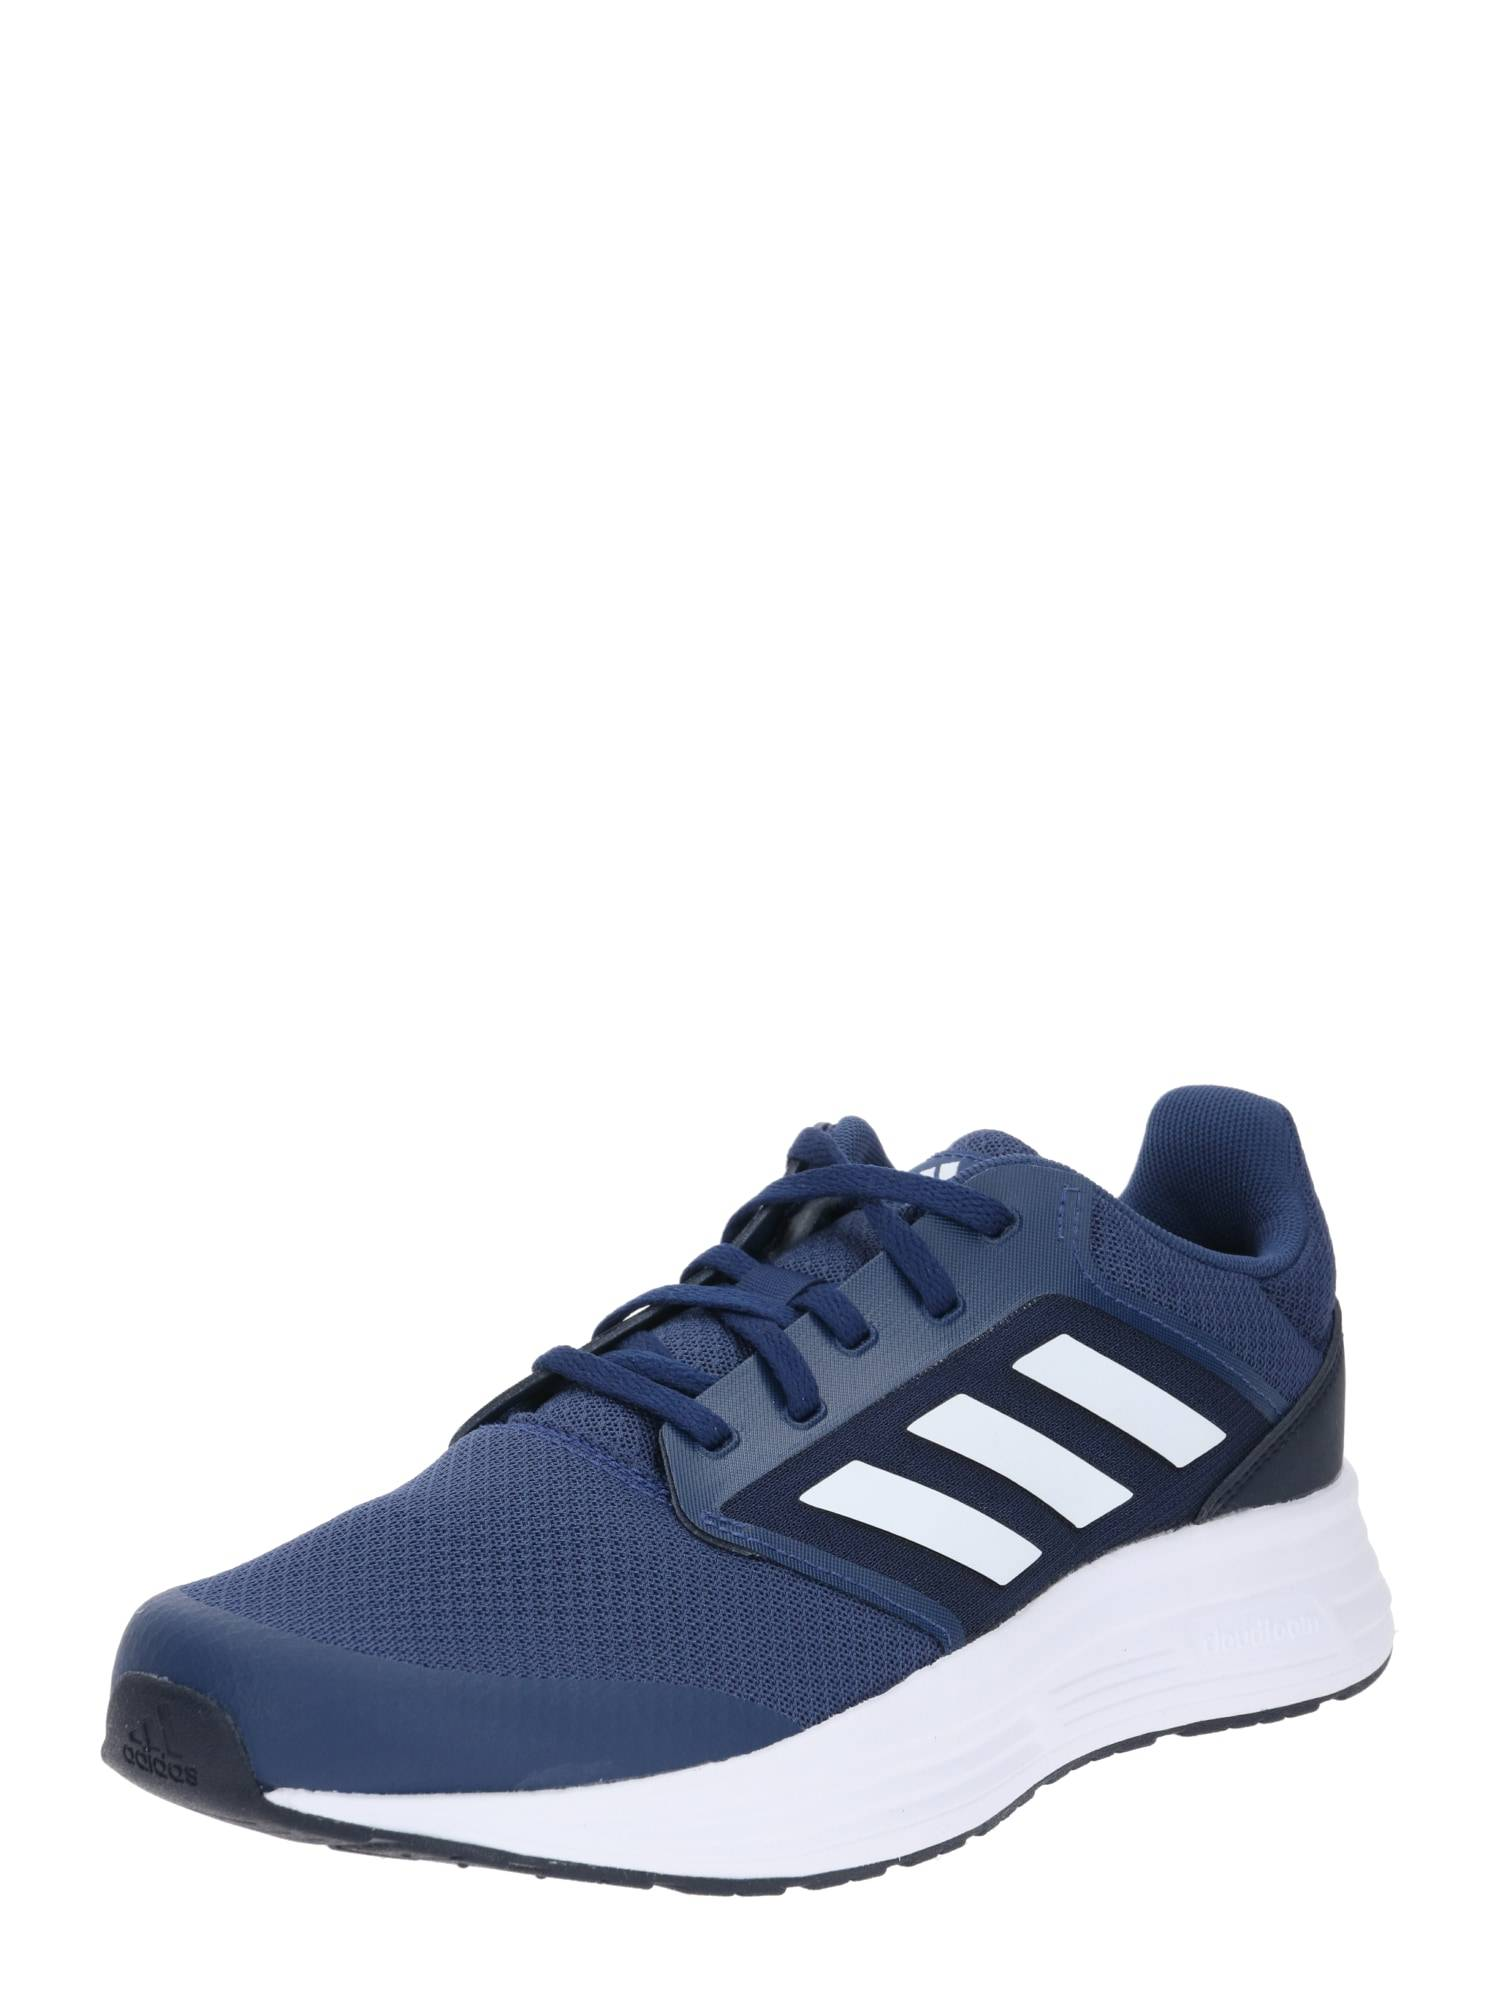 ADIDAS PERFORMANCE Chaussure de course 'Galaxy 5'  - Bleu - Taille: 41-41.5 - male